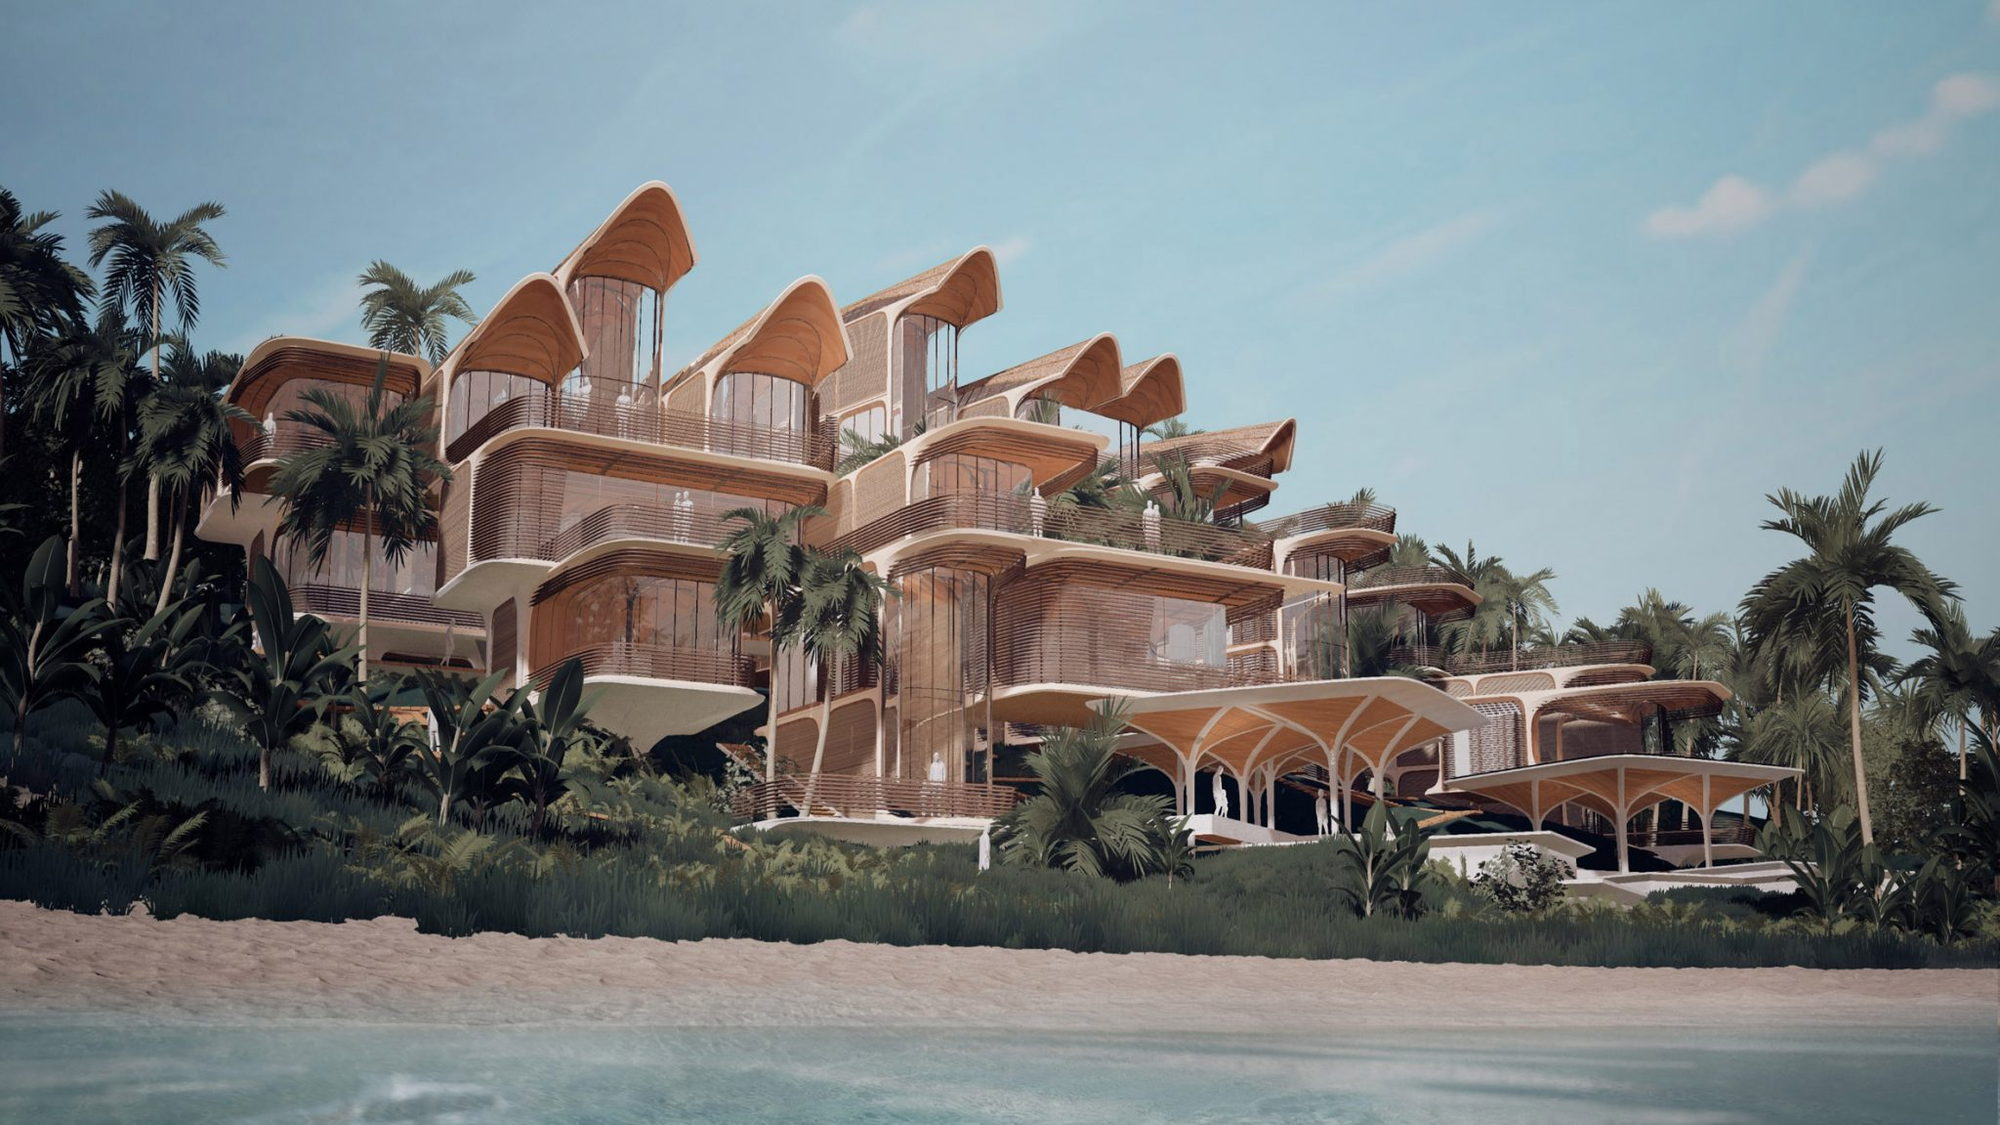 Zaha Hadid?s Próspera Island Project Blends Sustainability with Luxury Living